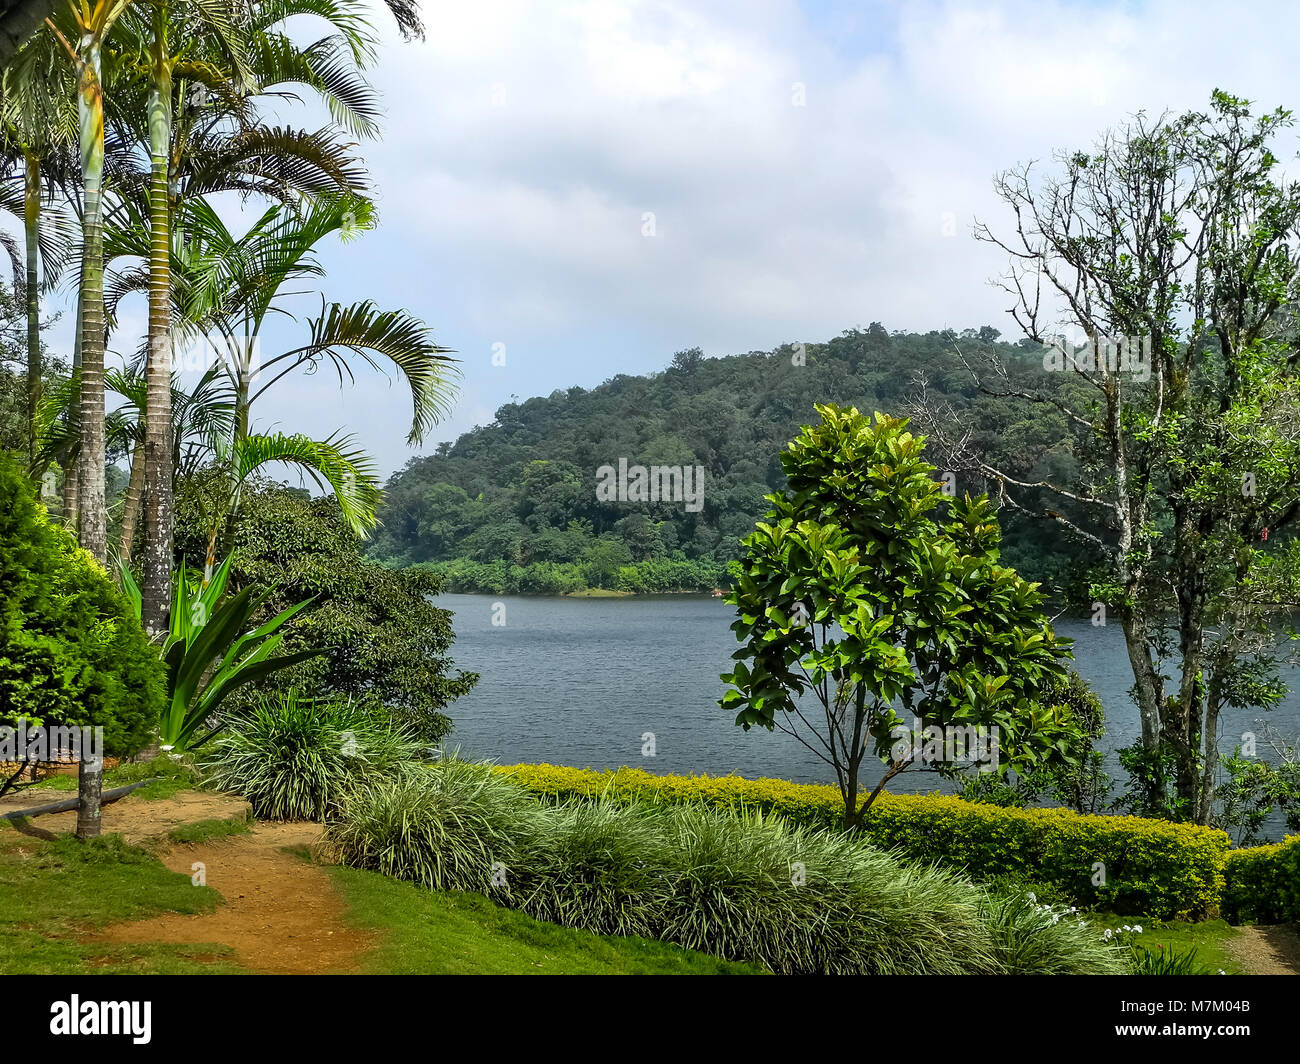 THEKKADI, KERALA, INDIA - DEC. 16 2011: Beautiful landscape with colorful wild forest and Periyar River, Thekkadi, - Stock Image